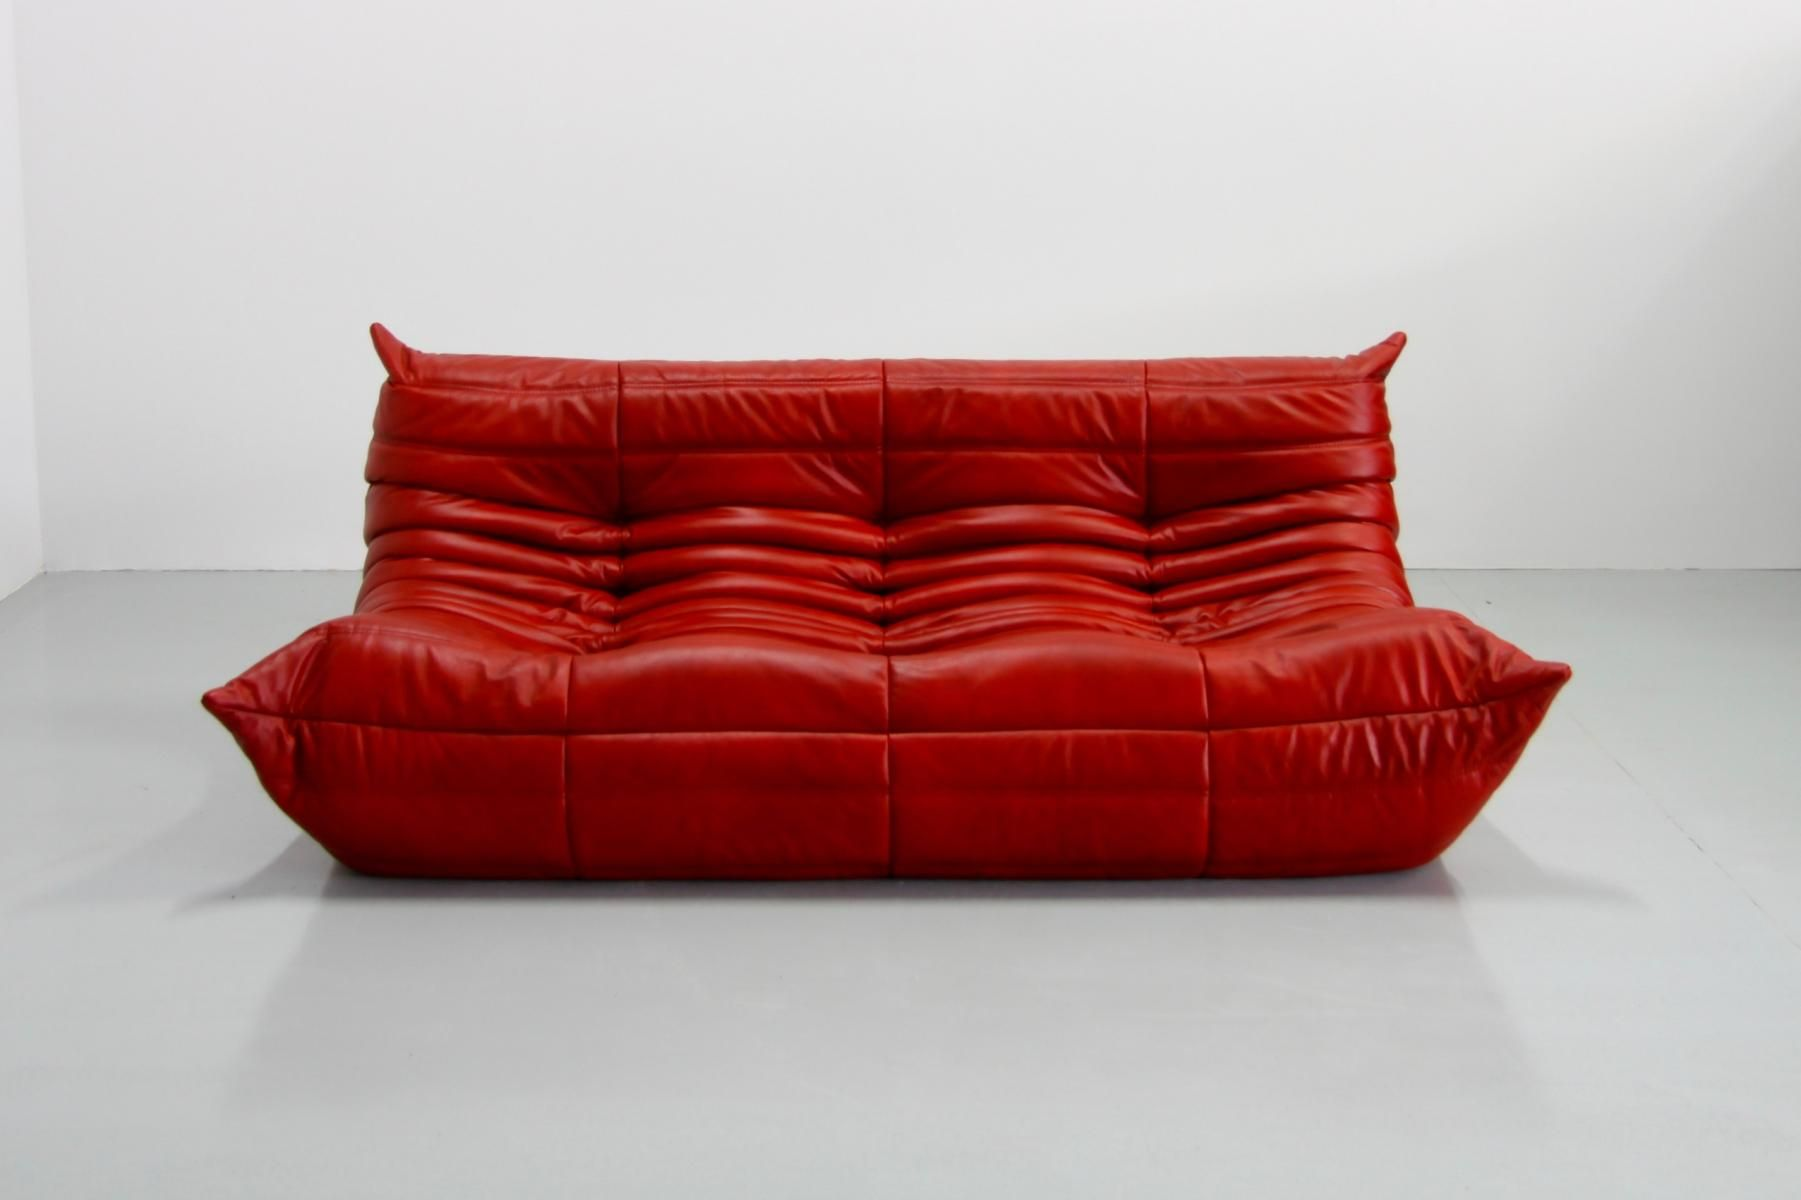 Togo Sofa Pamono Vintage Red Leather Togo Sofa By Michel Ducaroy For Ligne Roset